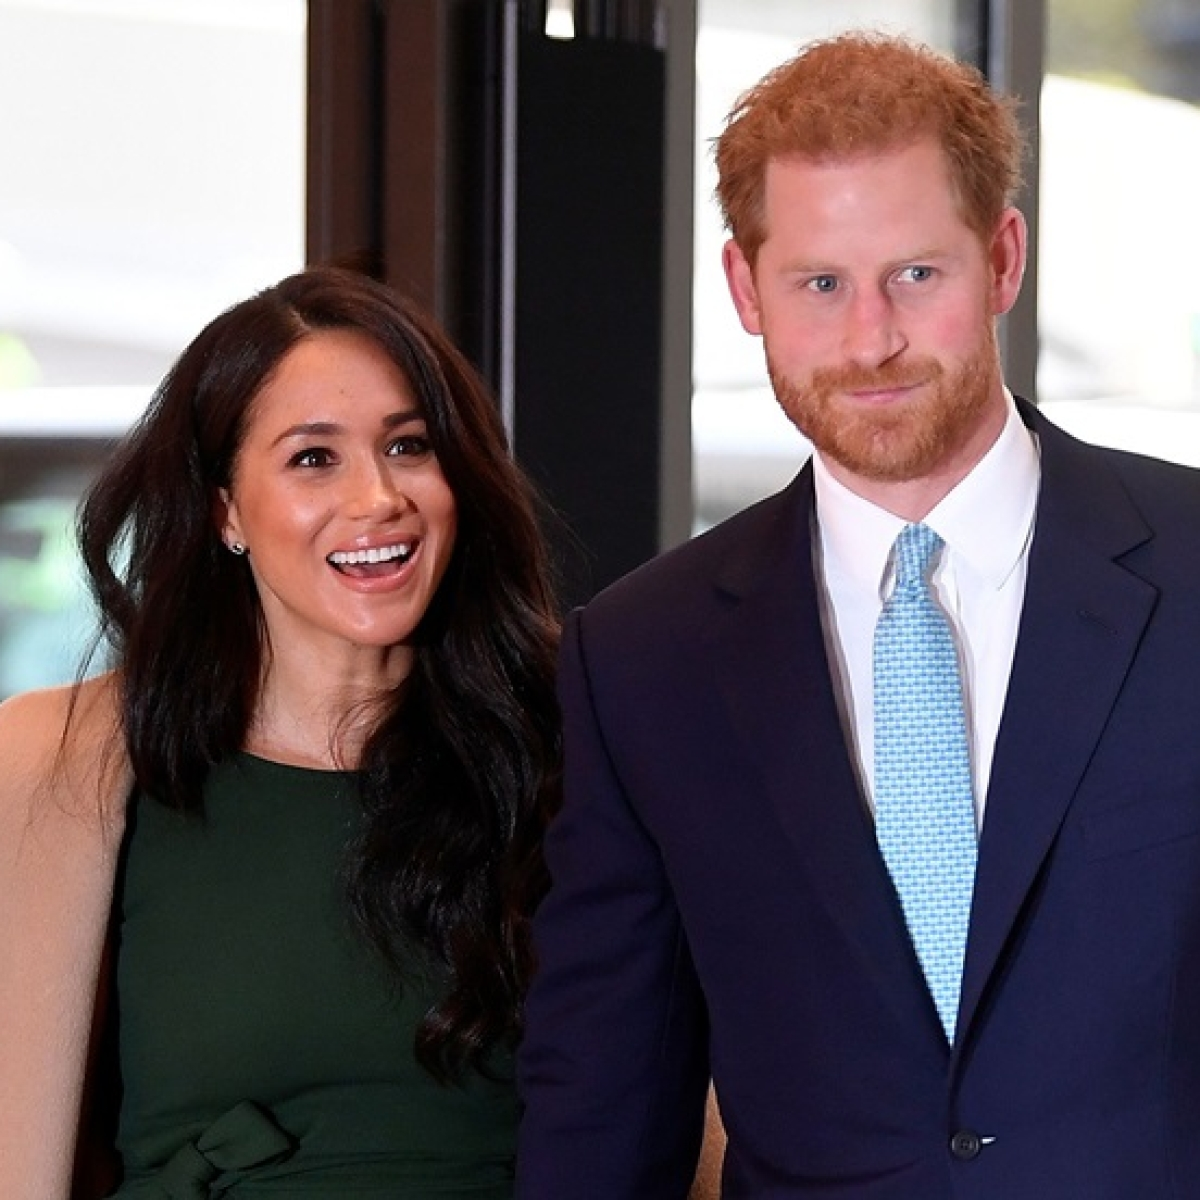 Queen Elizabeth agrees to 'period of transition' for Harry and Meghan